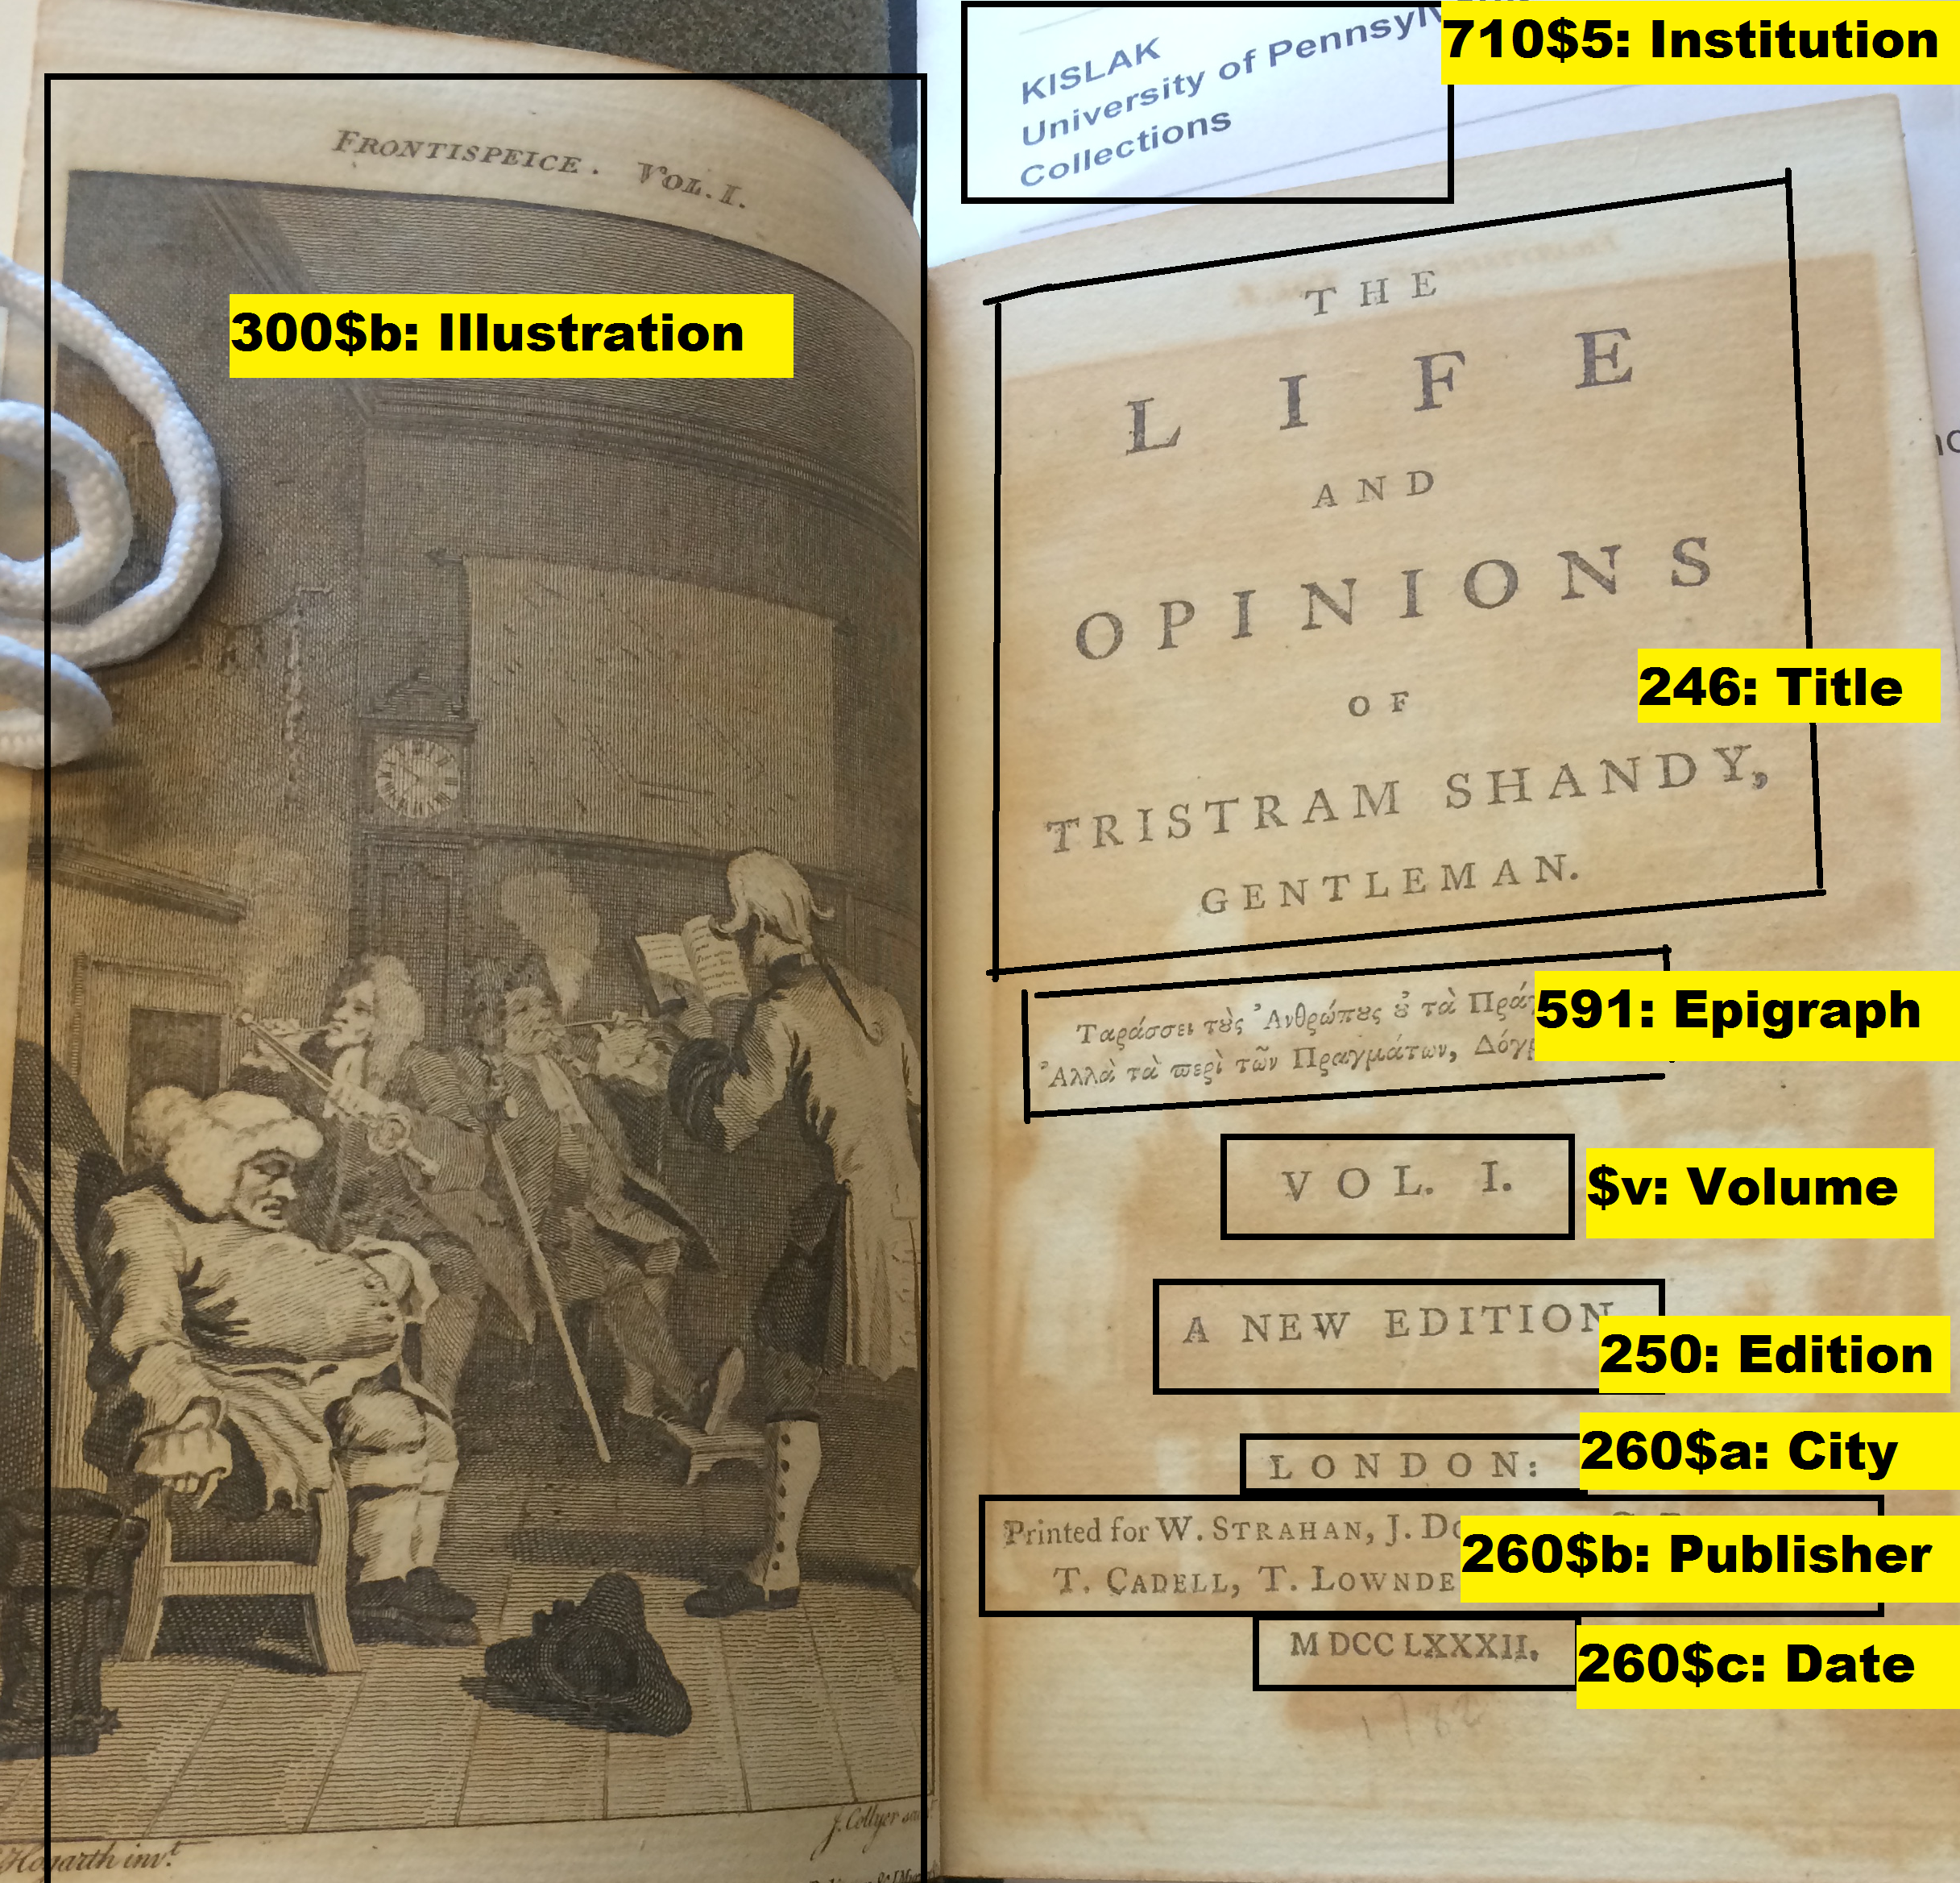 Shows a photo of title page with various fields labeled by name, such as title, illustration, etc.